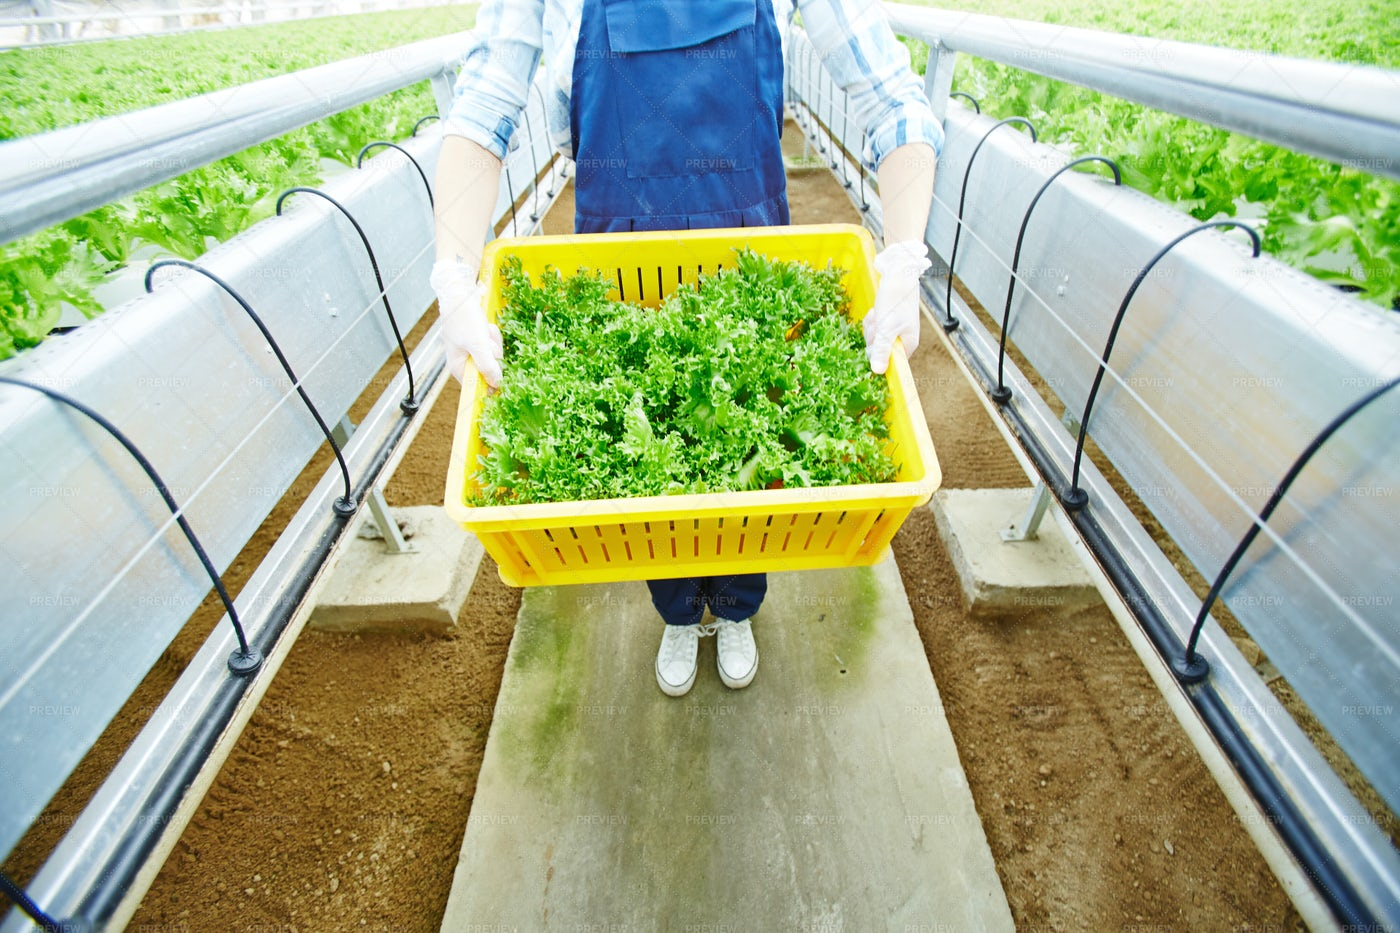 Greenhouse Worker With Crop: Stock Photos